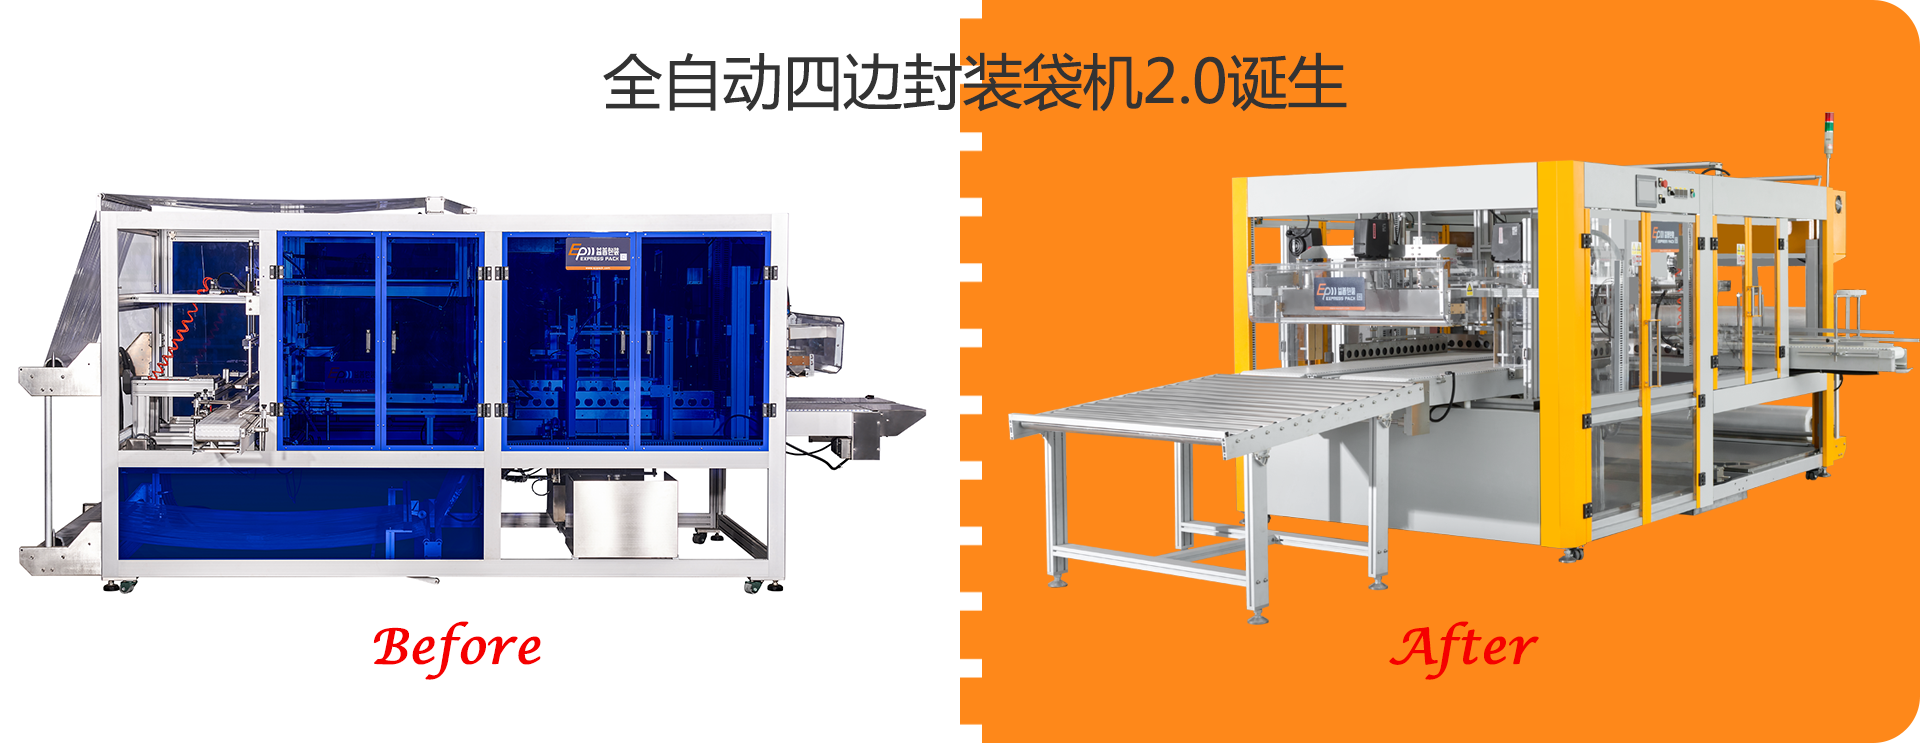 Automatic bagging machine2.0